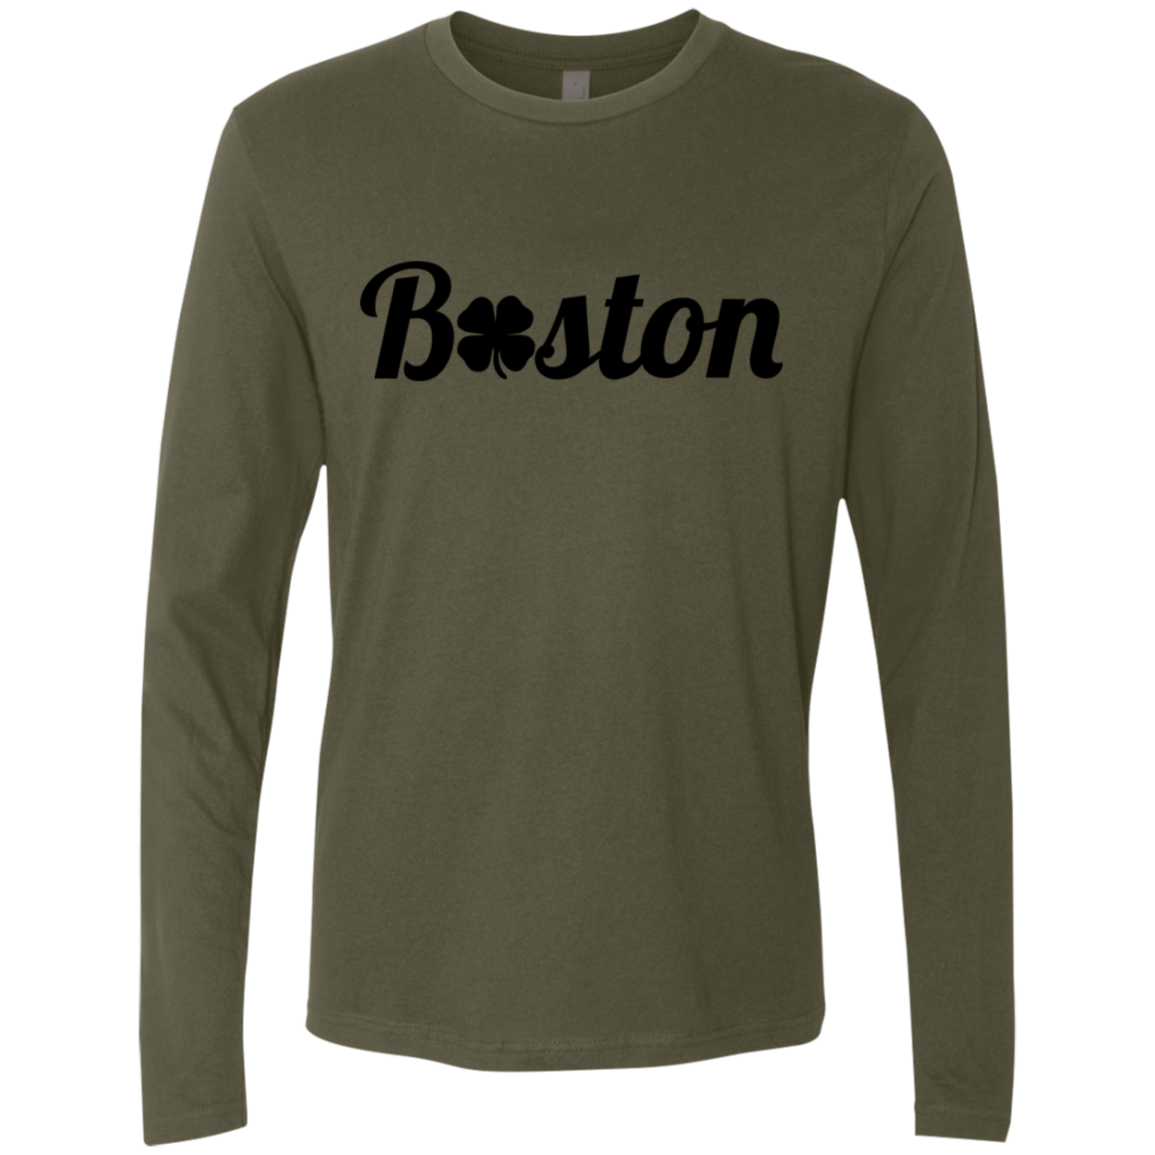 Boston Celtics Men's Long Sleeve Tee - Trendy Tees